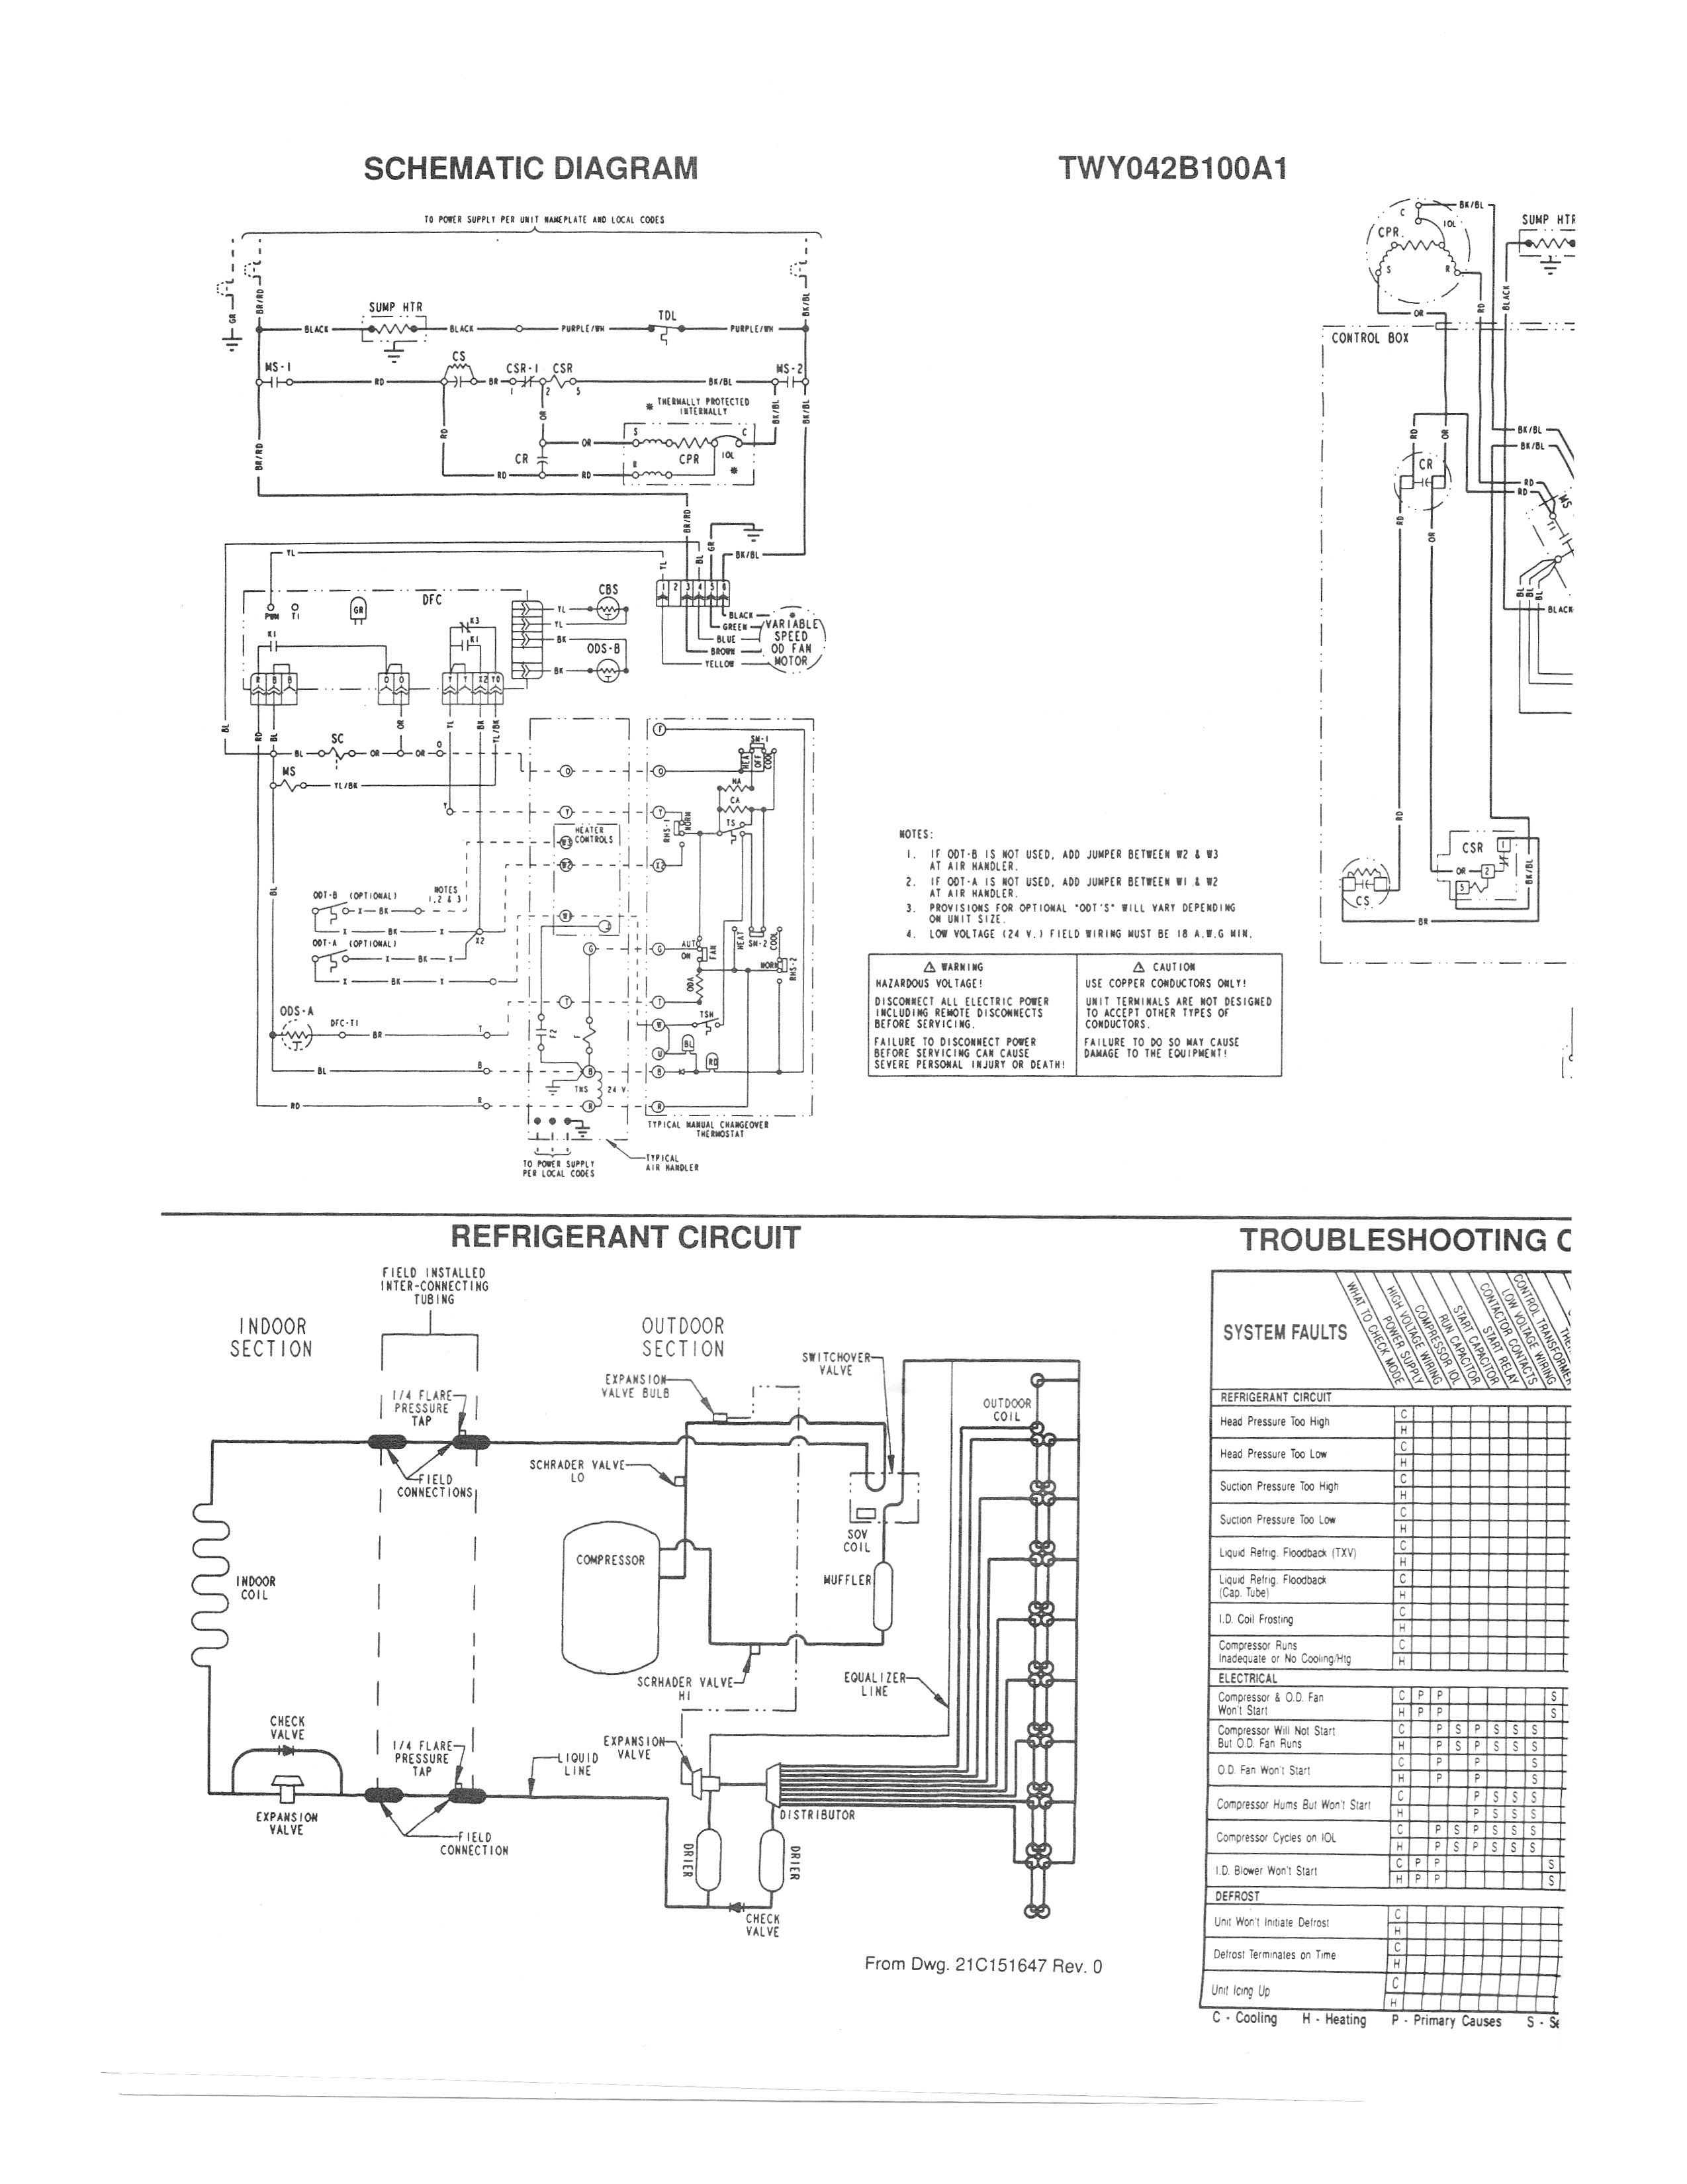 realfixesrealfast wiring diagram gm wiring diagram schematic Electrical Plug Wiring Colors hight resolution of wiring diagram for ac unit thermostat fresh trane hvac wiring with realfixesrealfast wiring